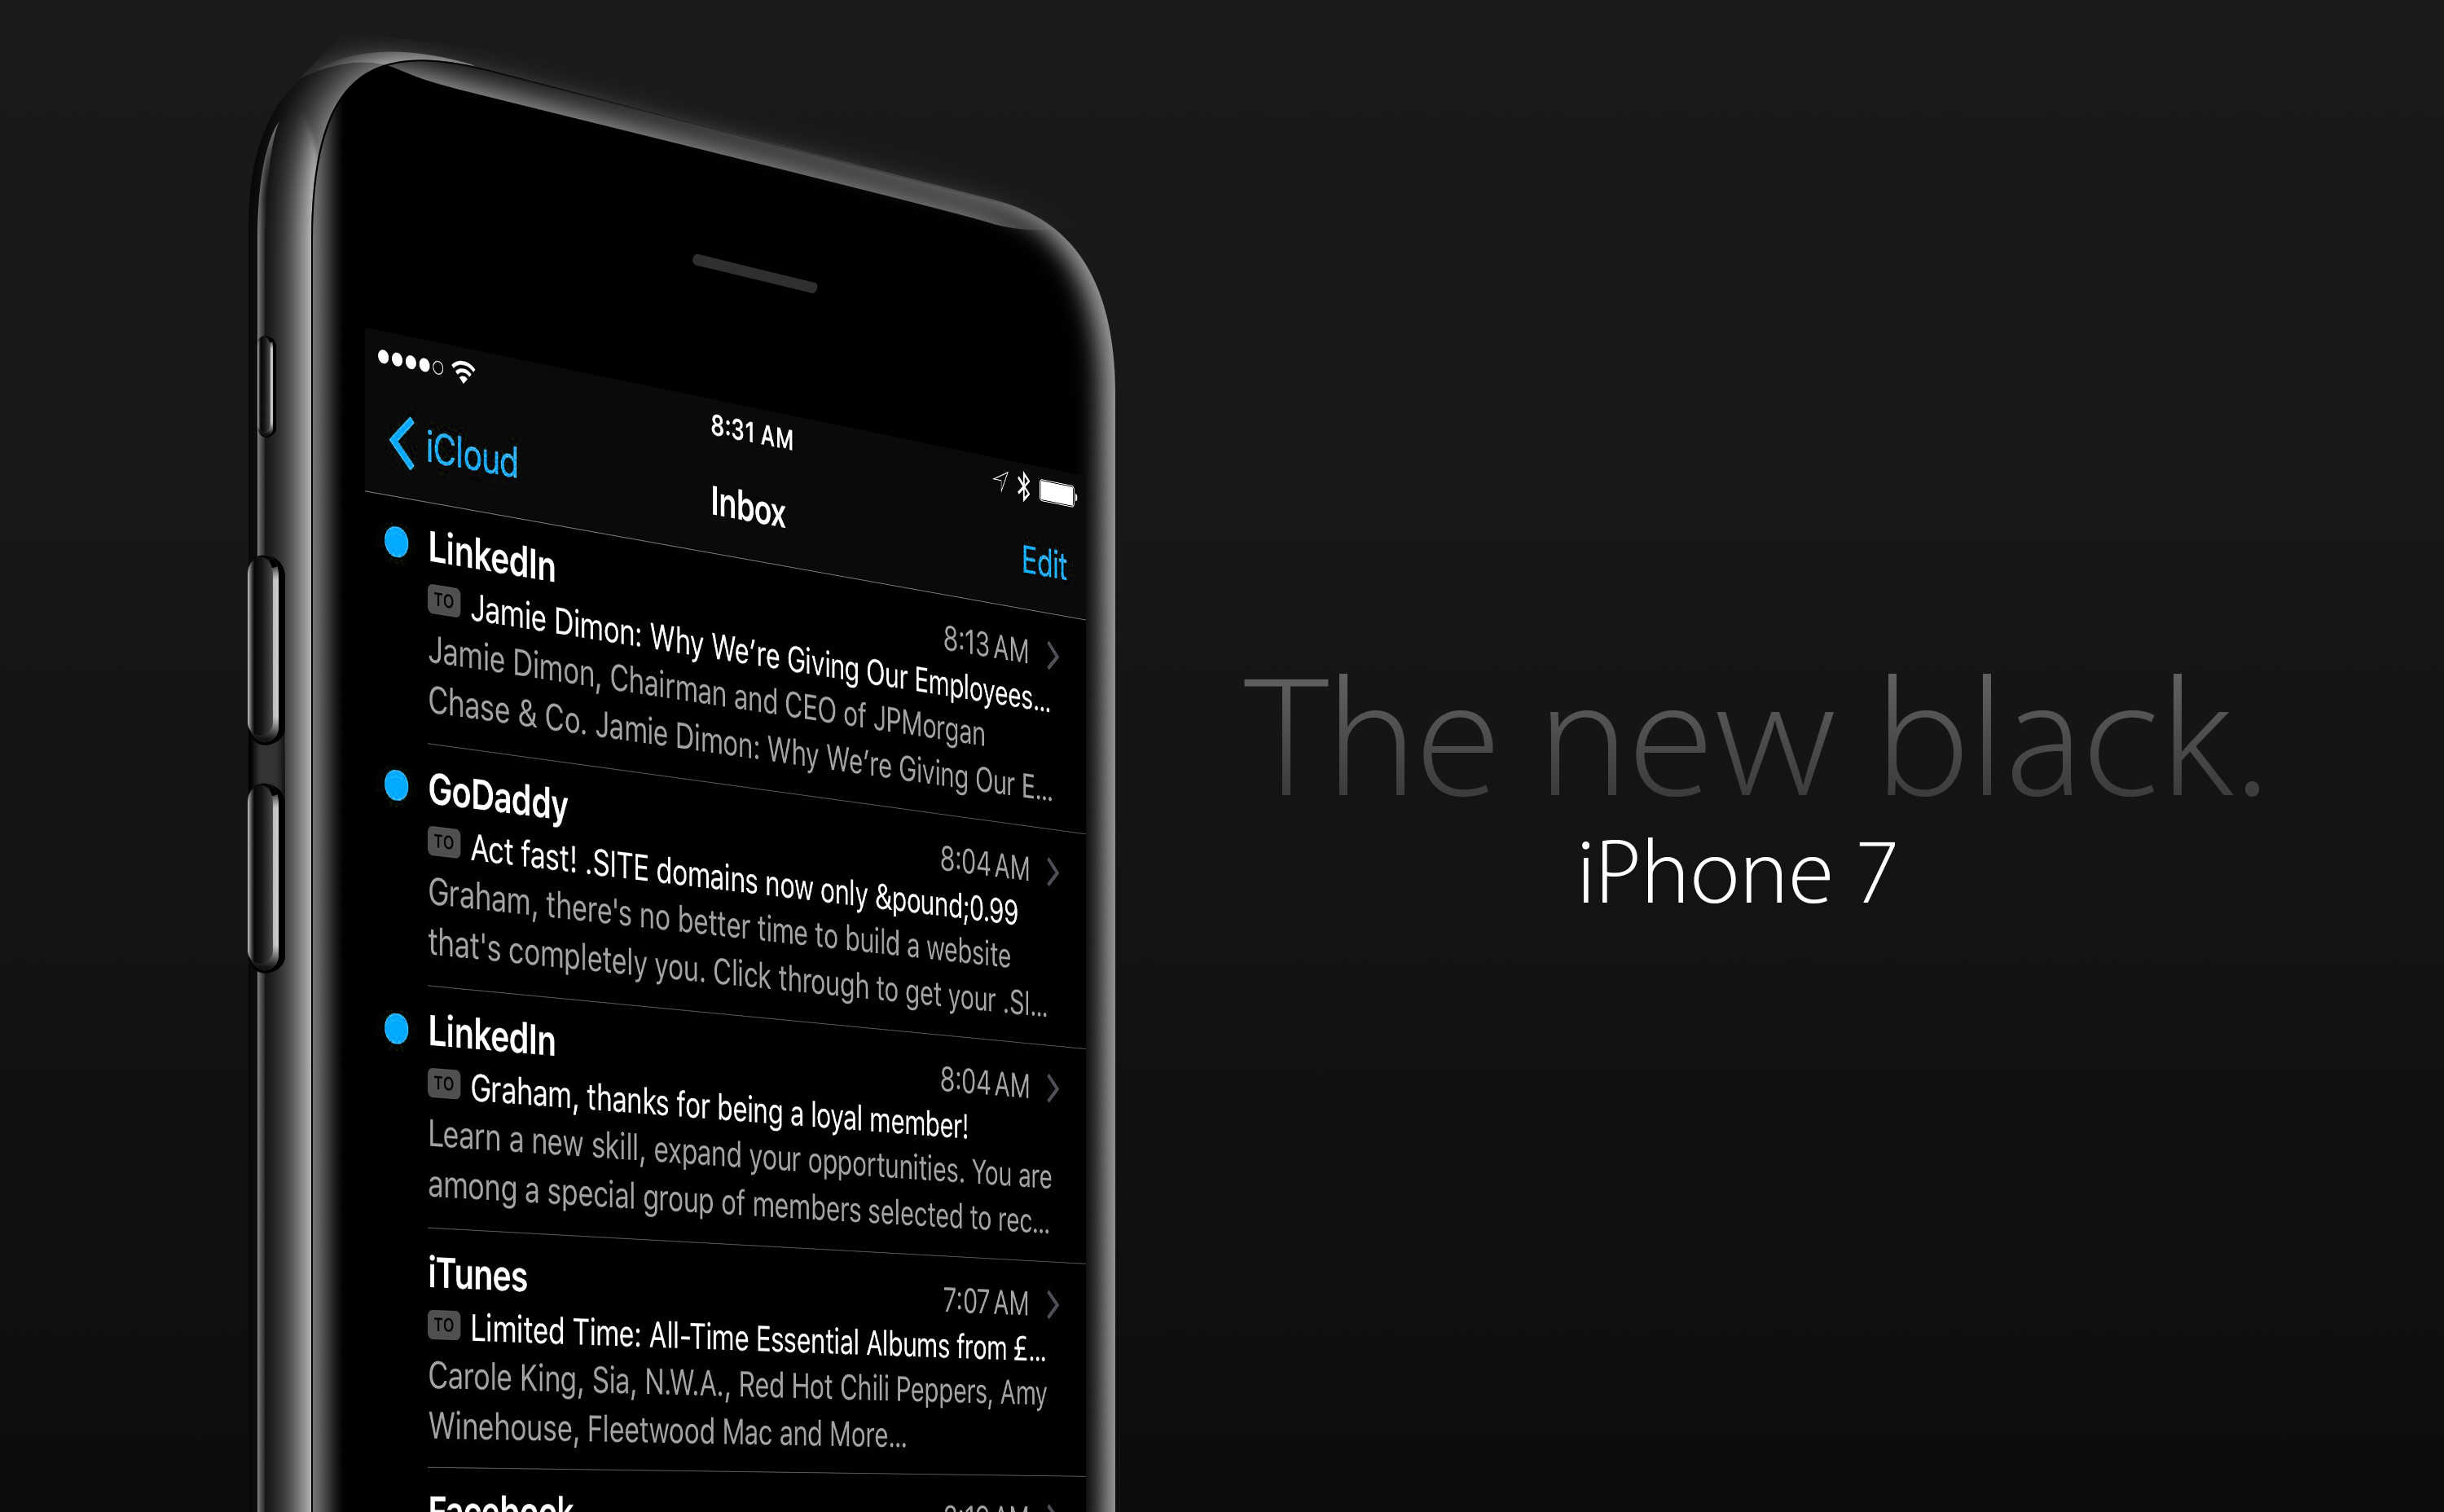 iPhone 7 mockup featuring black anodized aluminum case, OLED display and iOS 10 dark mode